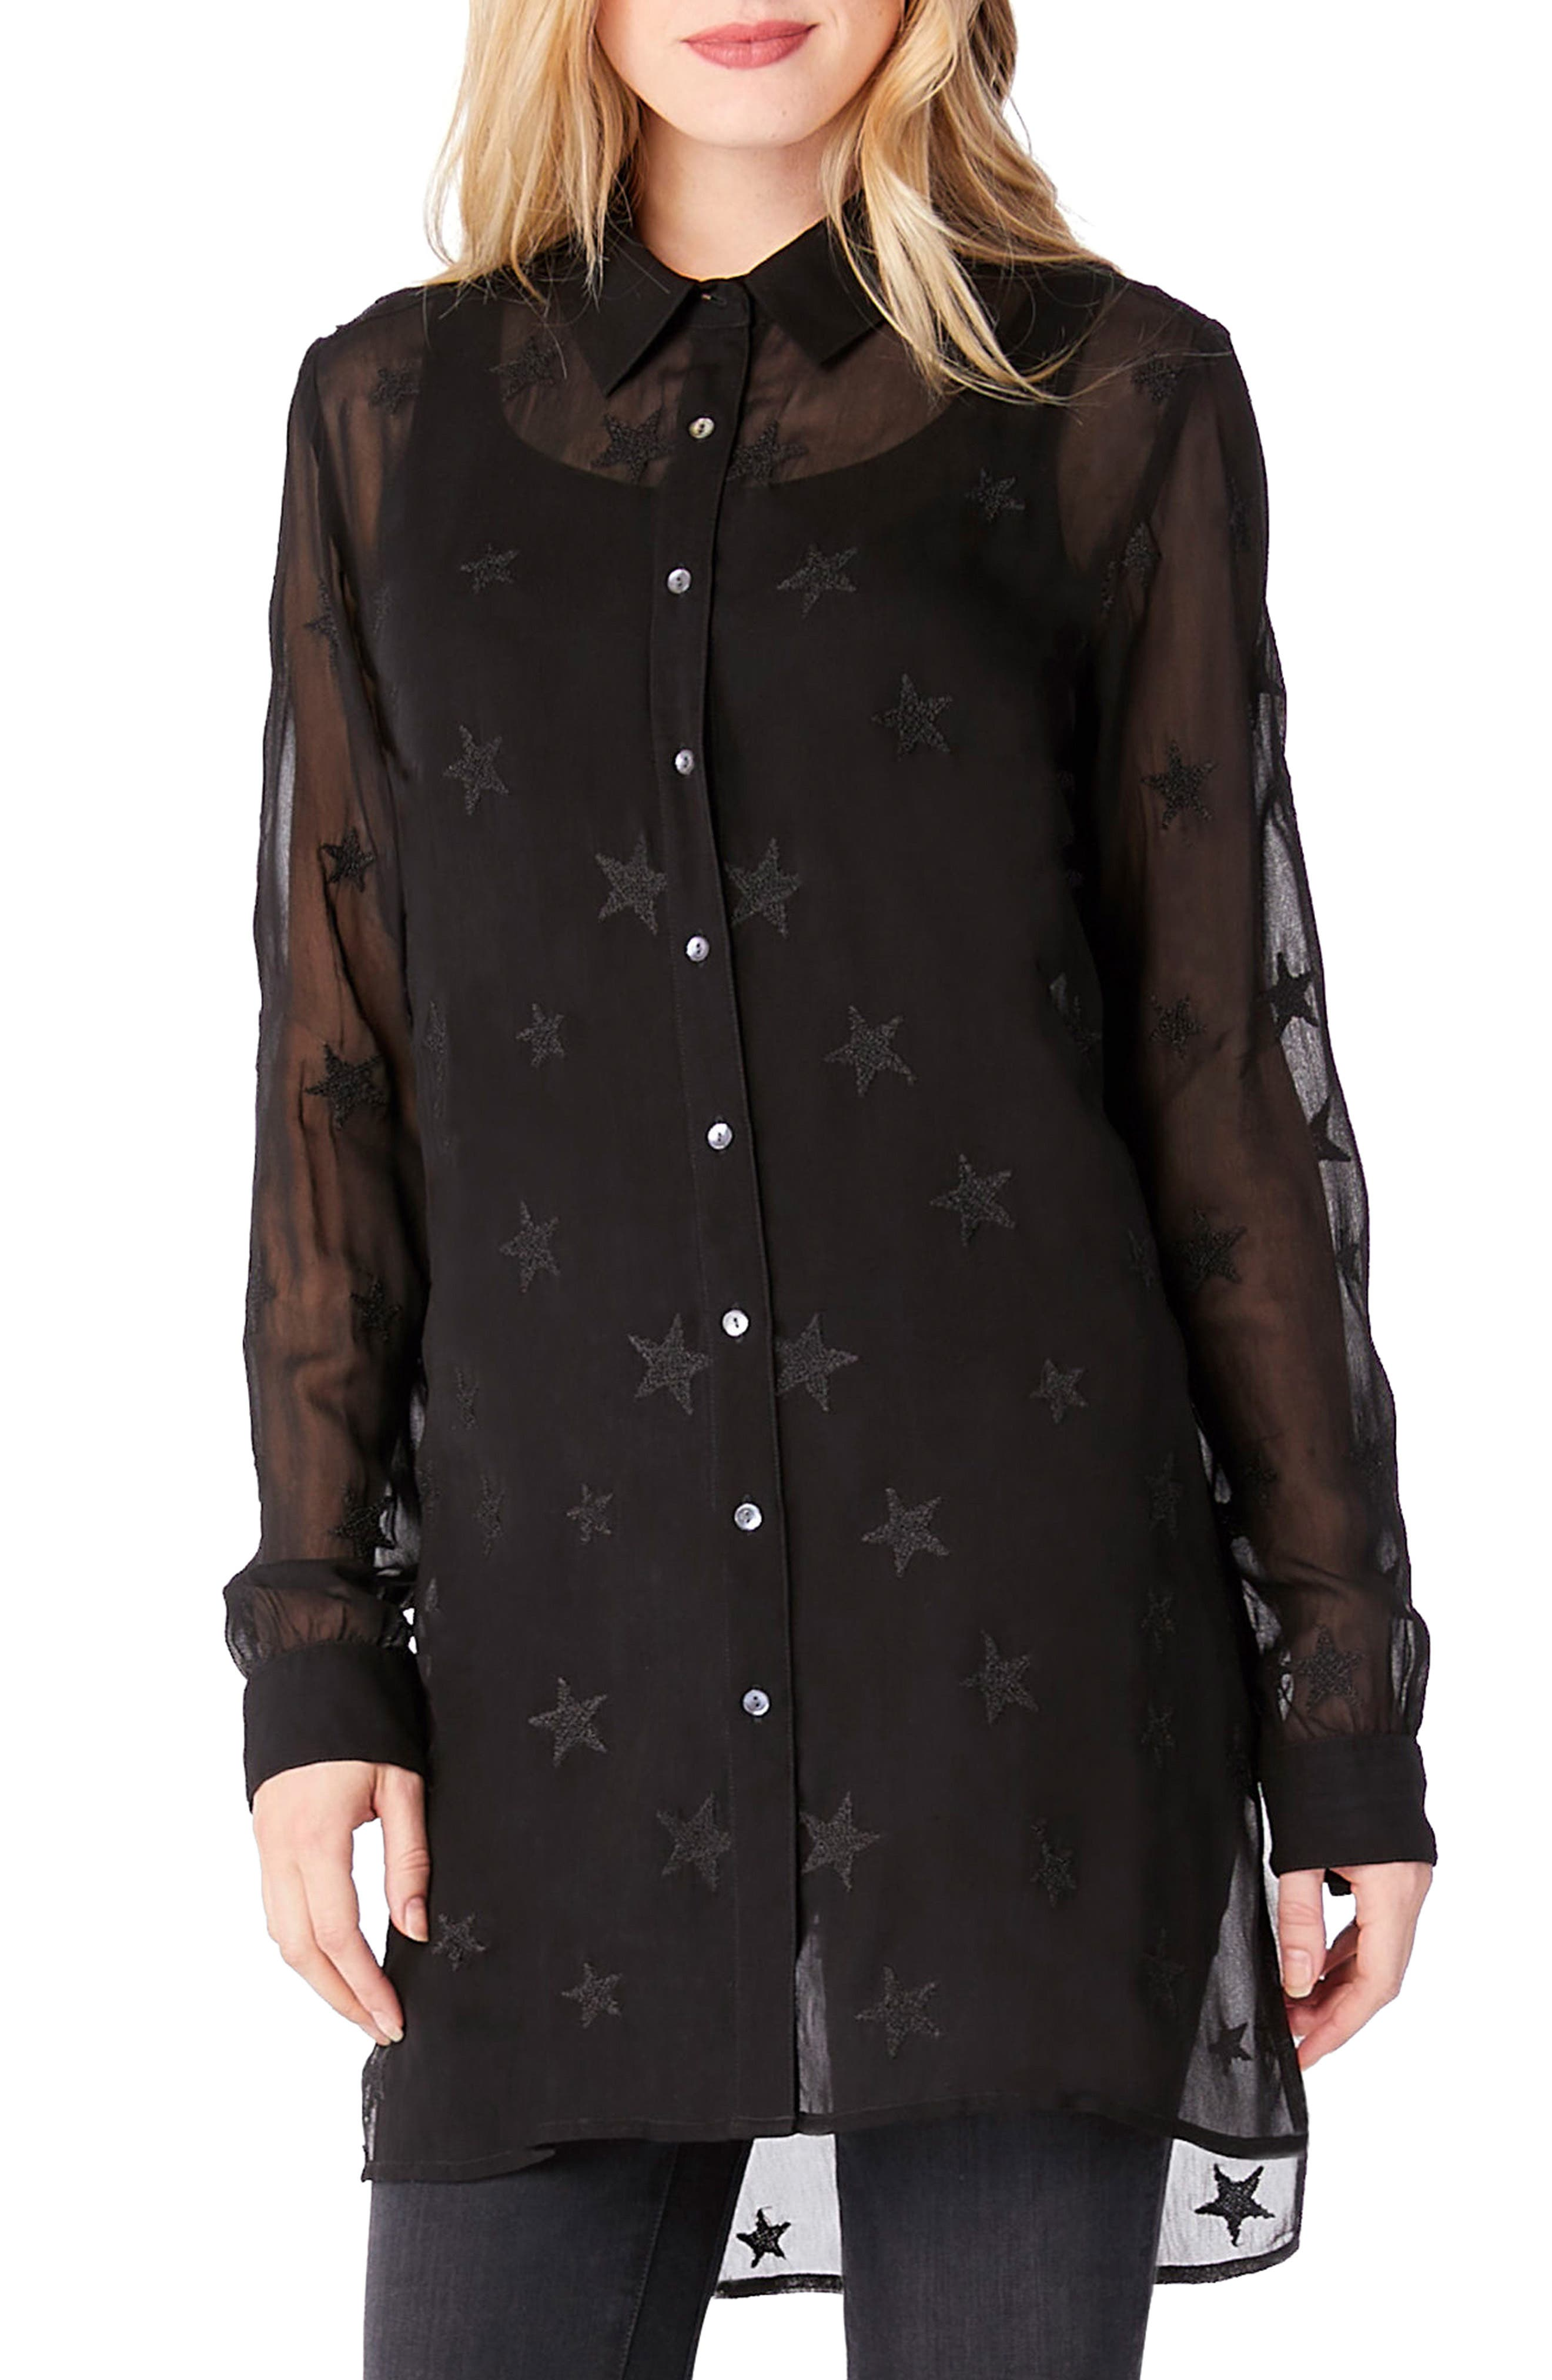 Star Embroidered Button-Up Shirt,                         Main,                         color, Black